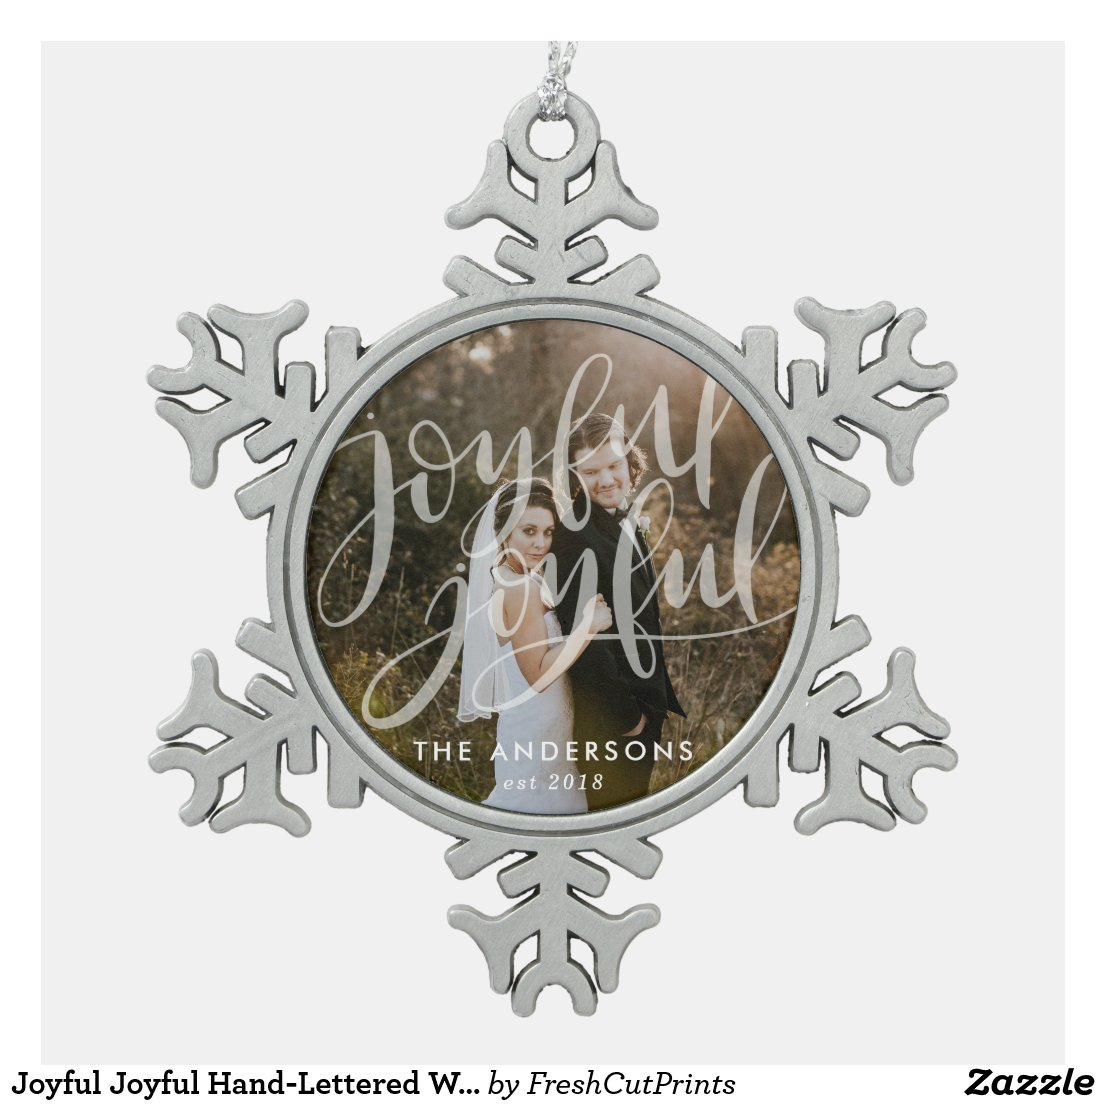 Joyful Joyful Hand-Lettered White Overlay Photo Snowflake Pewter Christmas Ornament